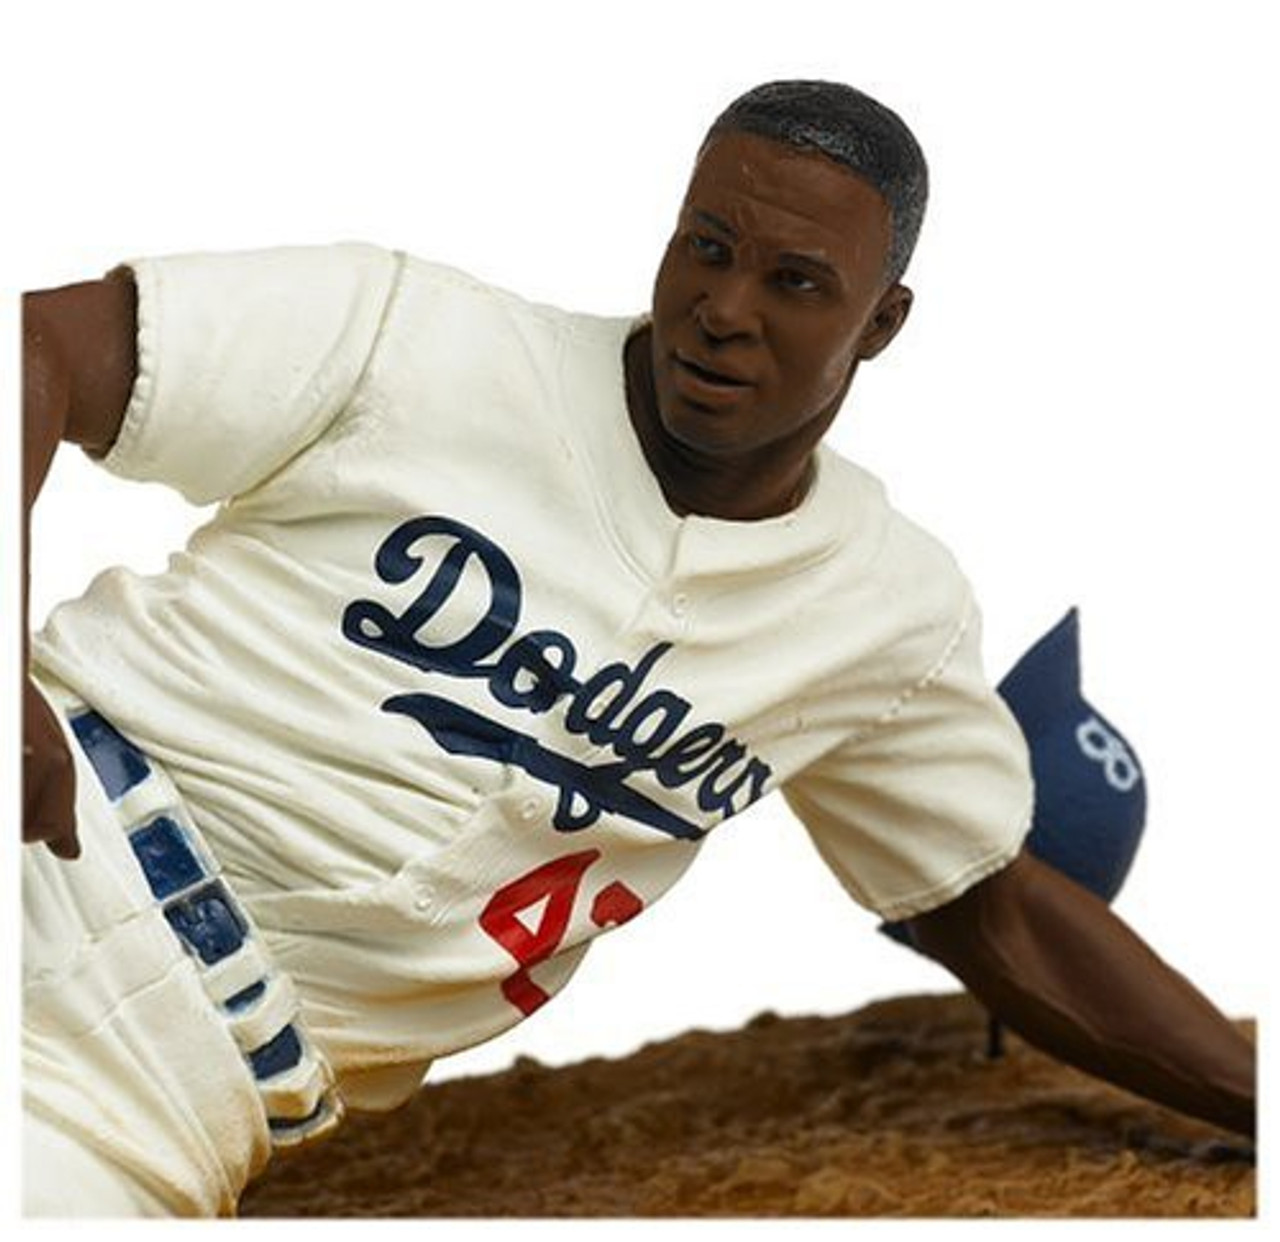 McFarlane Toys MLB Cooperstown Collection Series 3 Jackie Robinson Action Figure [White Uniform]